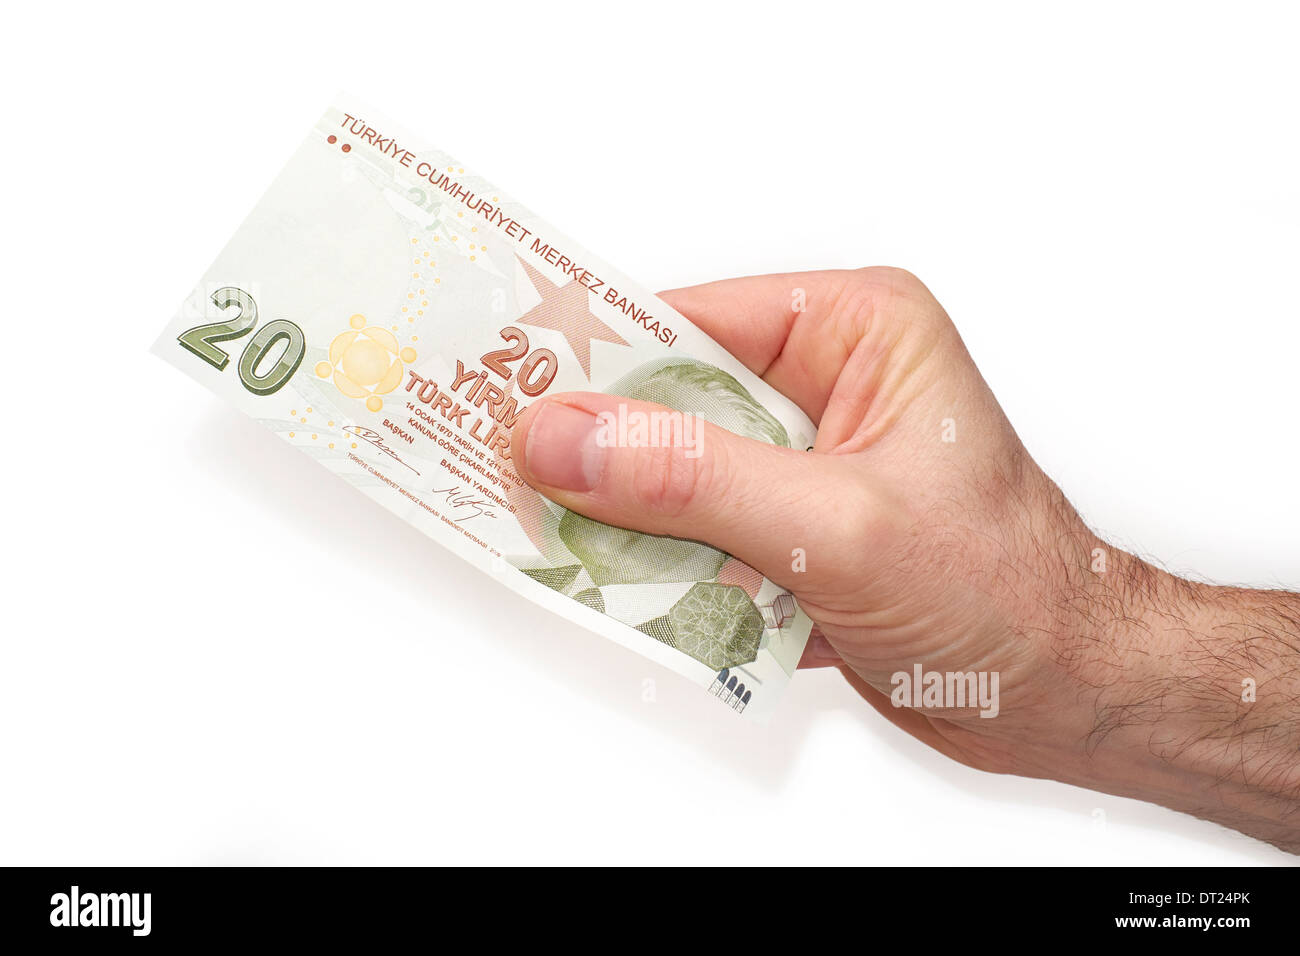 A hand holding a Turkish 20 Lira note, on a white background. Stock Photo